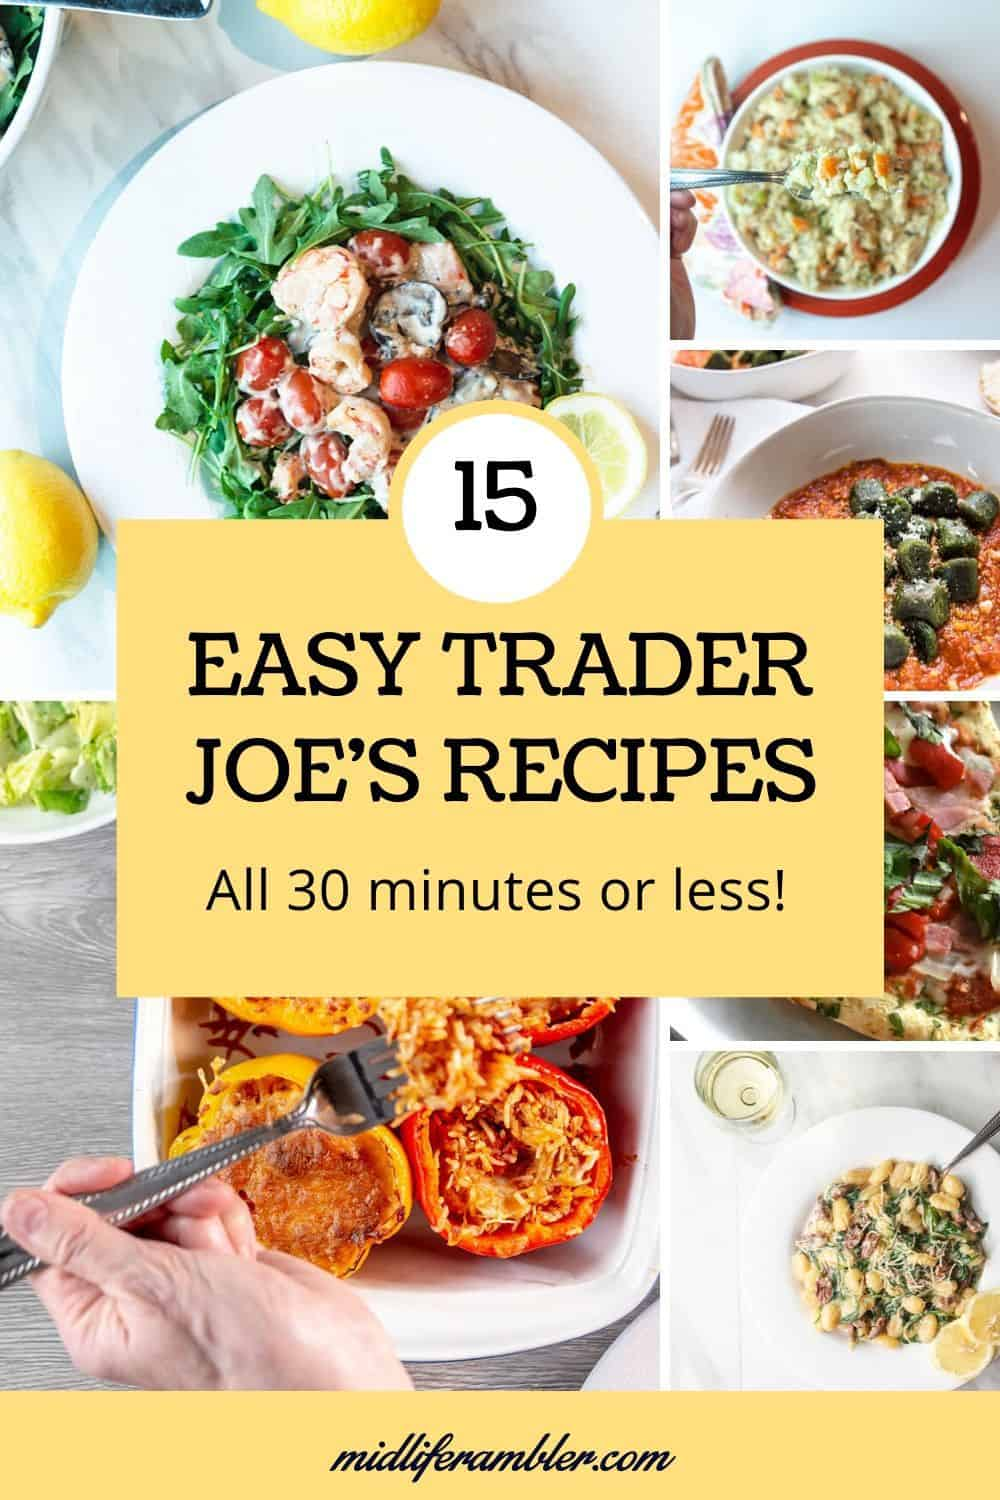 15 Easy Trader Joe's Recipes Ready in 30 Minutes or Less - All of these dinner recipes are ready in 30 minutes or less because they take advantage of the many pre-made dinner ingredients from Trader Joe's like cauliflower gnocchi, just the sauce just the sauce turkey bolognese, and Trader Joe's famous Orange Chicken to deliver a delicious and healthy meal in a fraction of the time you would normally need to prepare it. #traderjoesrecipes #traderjoesmeals #dinnerfortwo #midliferambler